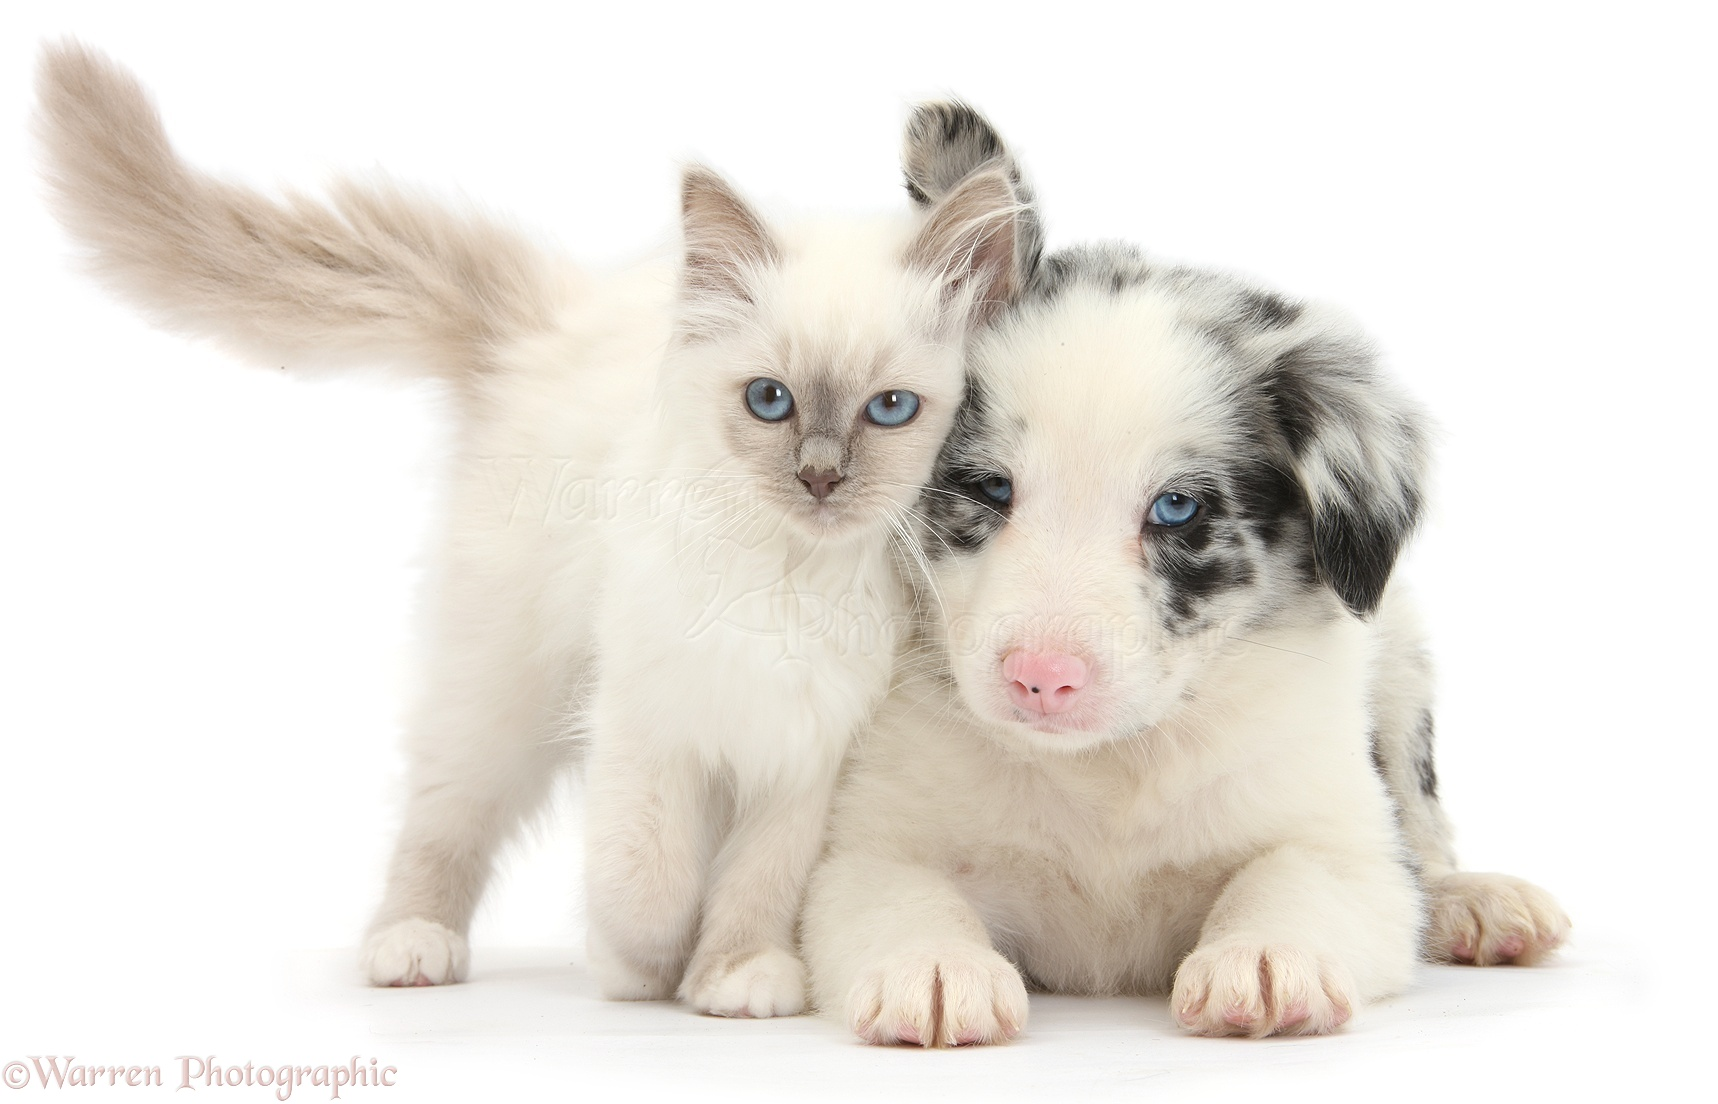 Pin images blue merle border collie dekreu reu wallpaper on pinterest -  7 Pin White And Merle Longhaired Puppy On Pinterest